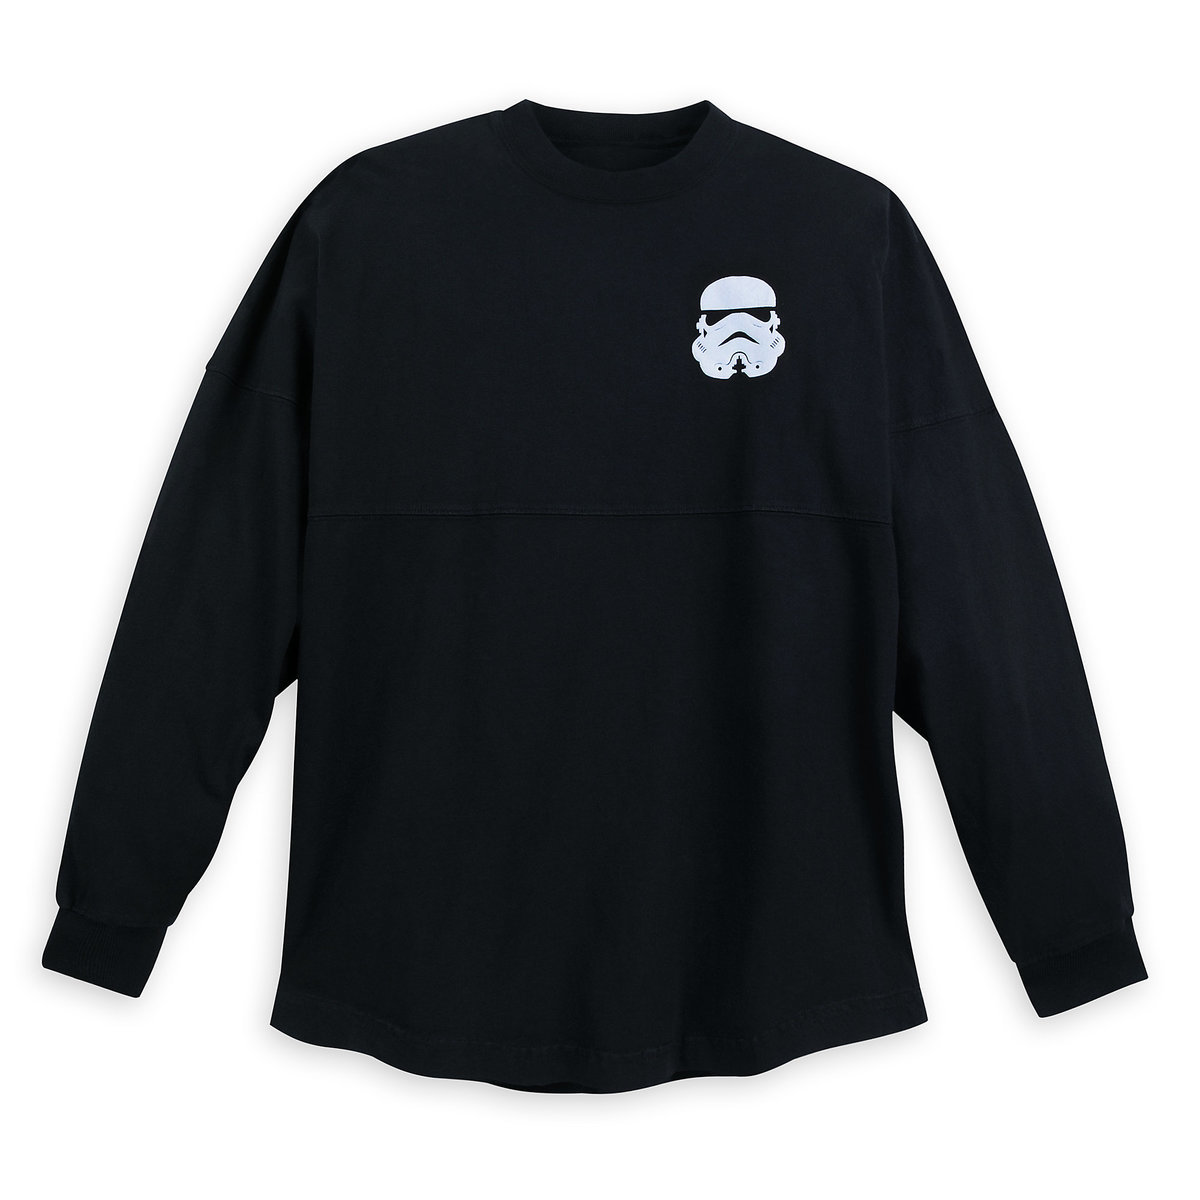 435a3265 Product Image of Stormtrooper Spirit Jersey for Adults # 1